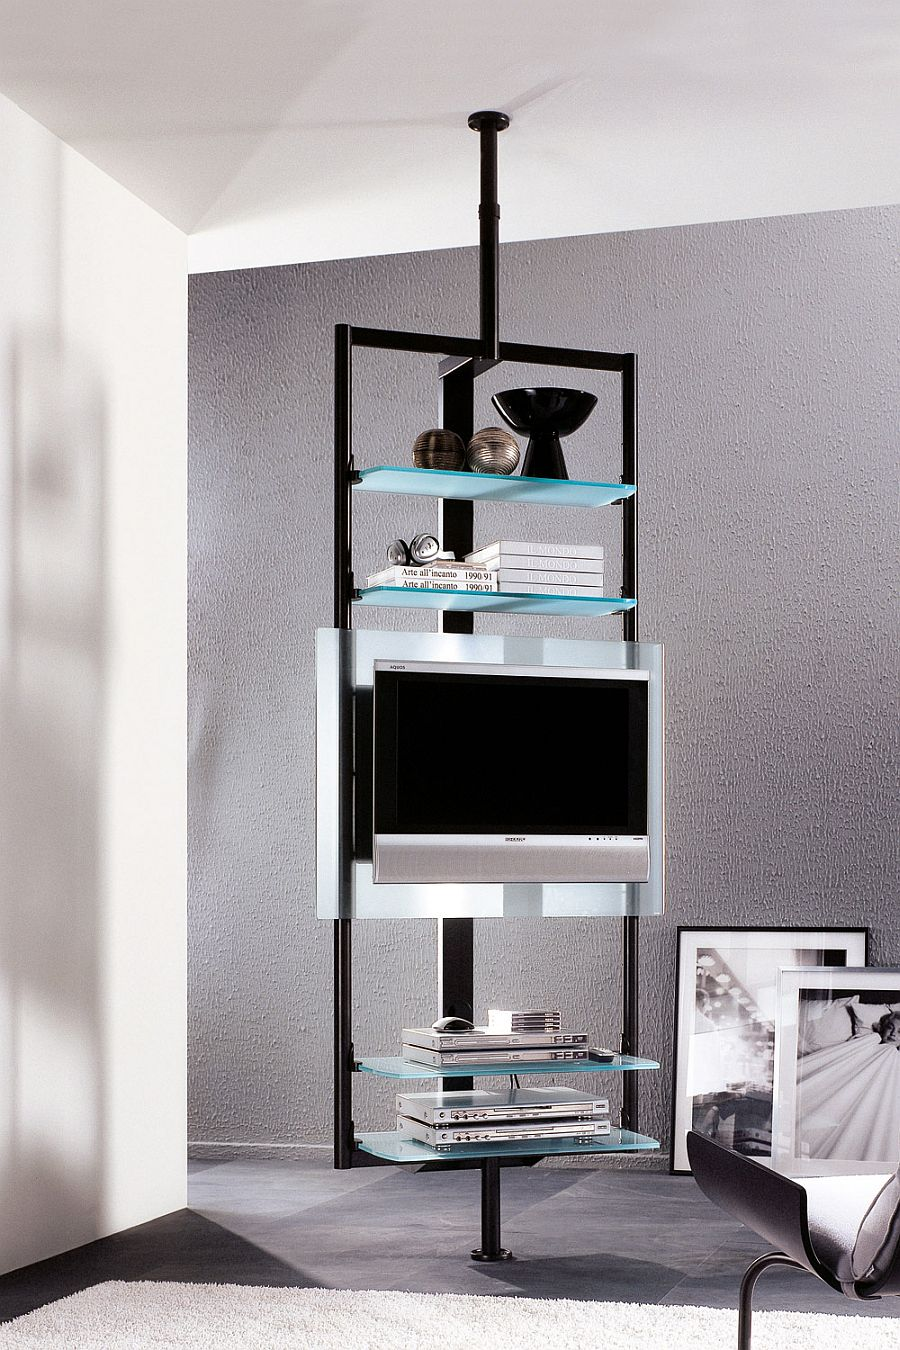 Sleek silhouette of the TV Stand ensures it takes little space